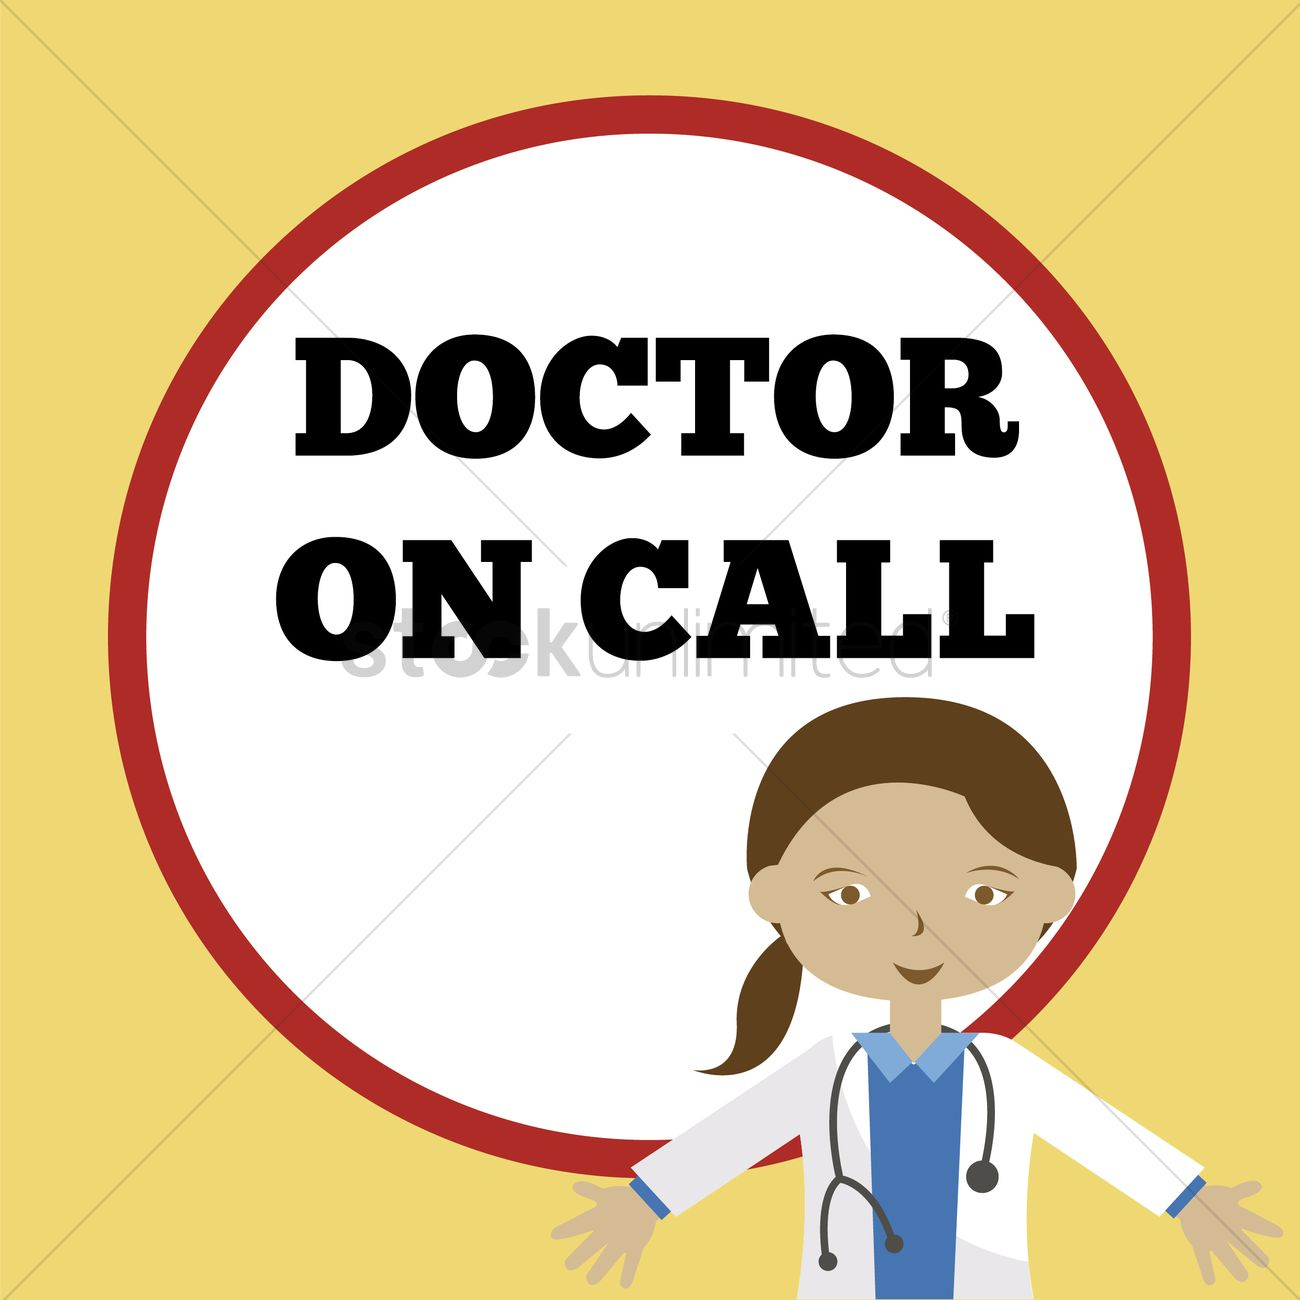 Doctor on call sign Vector Image.